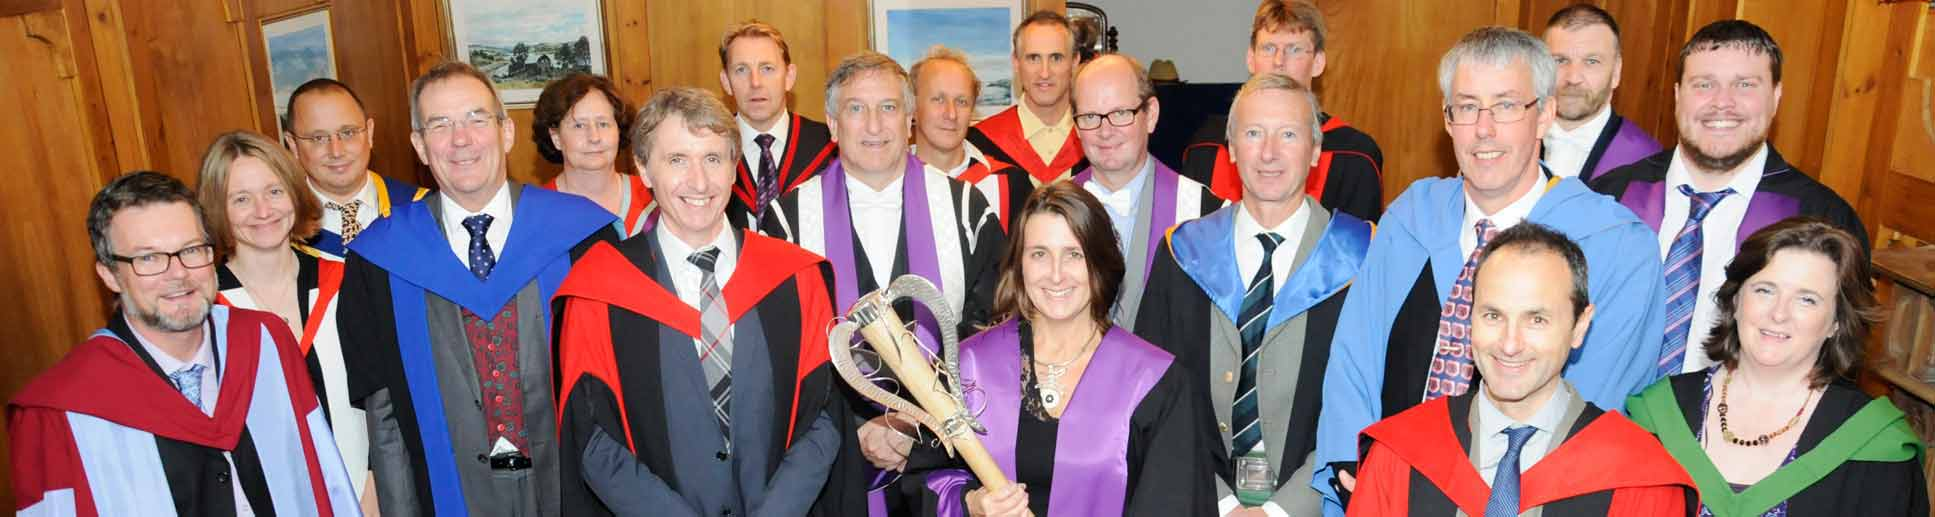 Formal gowns worn by the lecturers and university luminaries during a SAMS UHI graduation